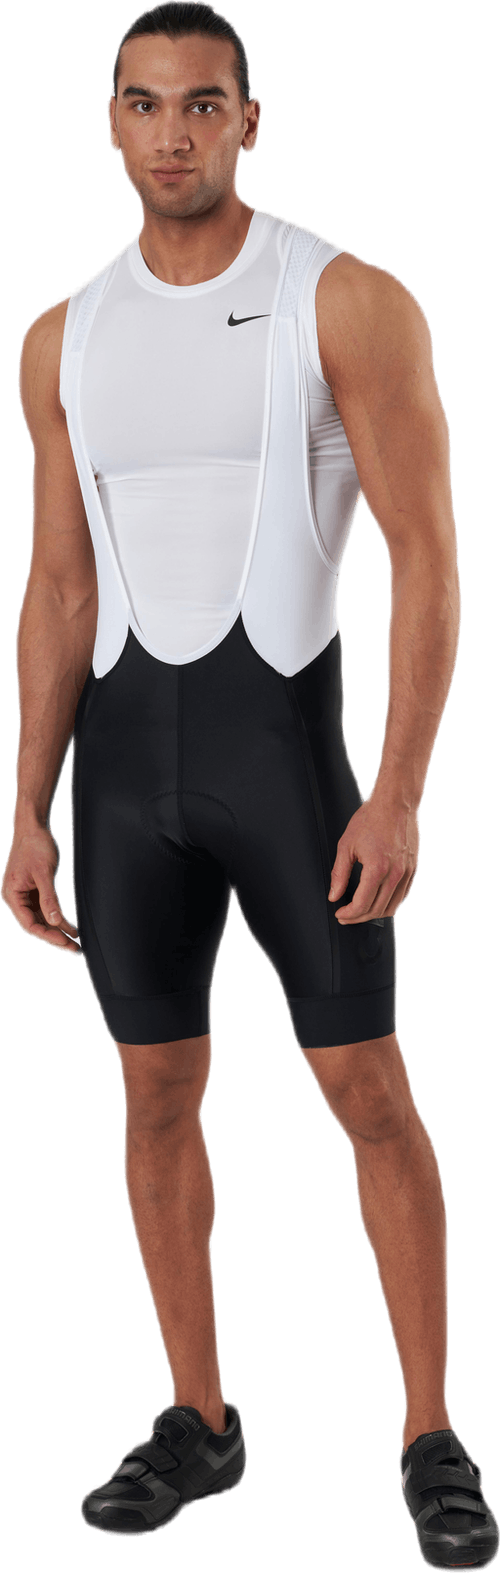 Advanced Endurance Bib Shorts Black